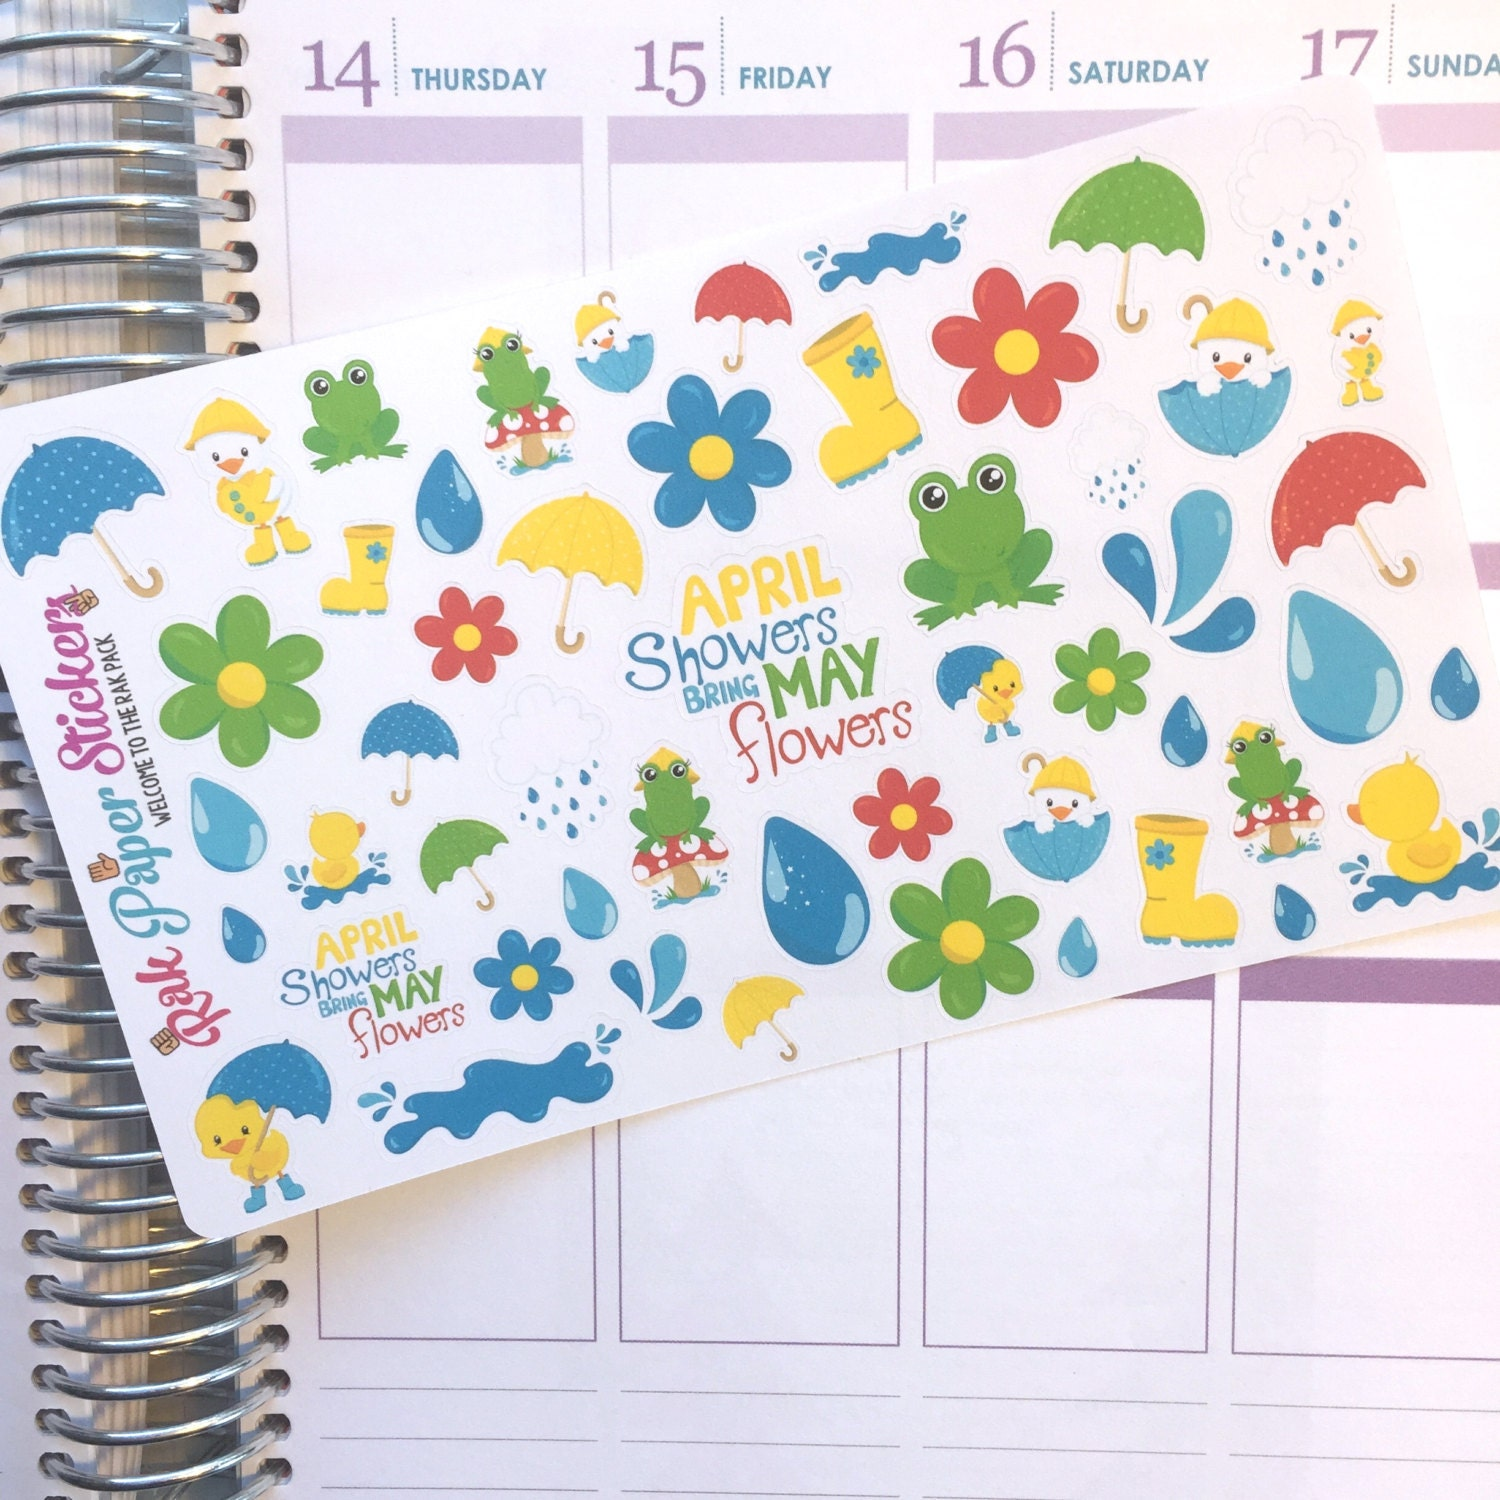 April Showers Bring May Flowers set of 50 stickers for your